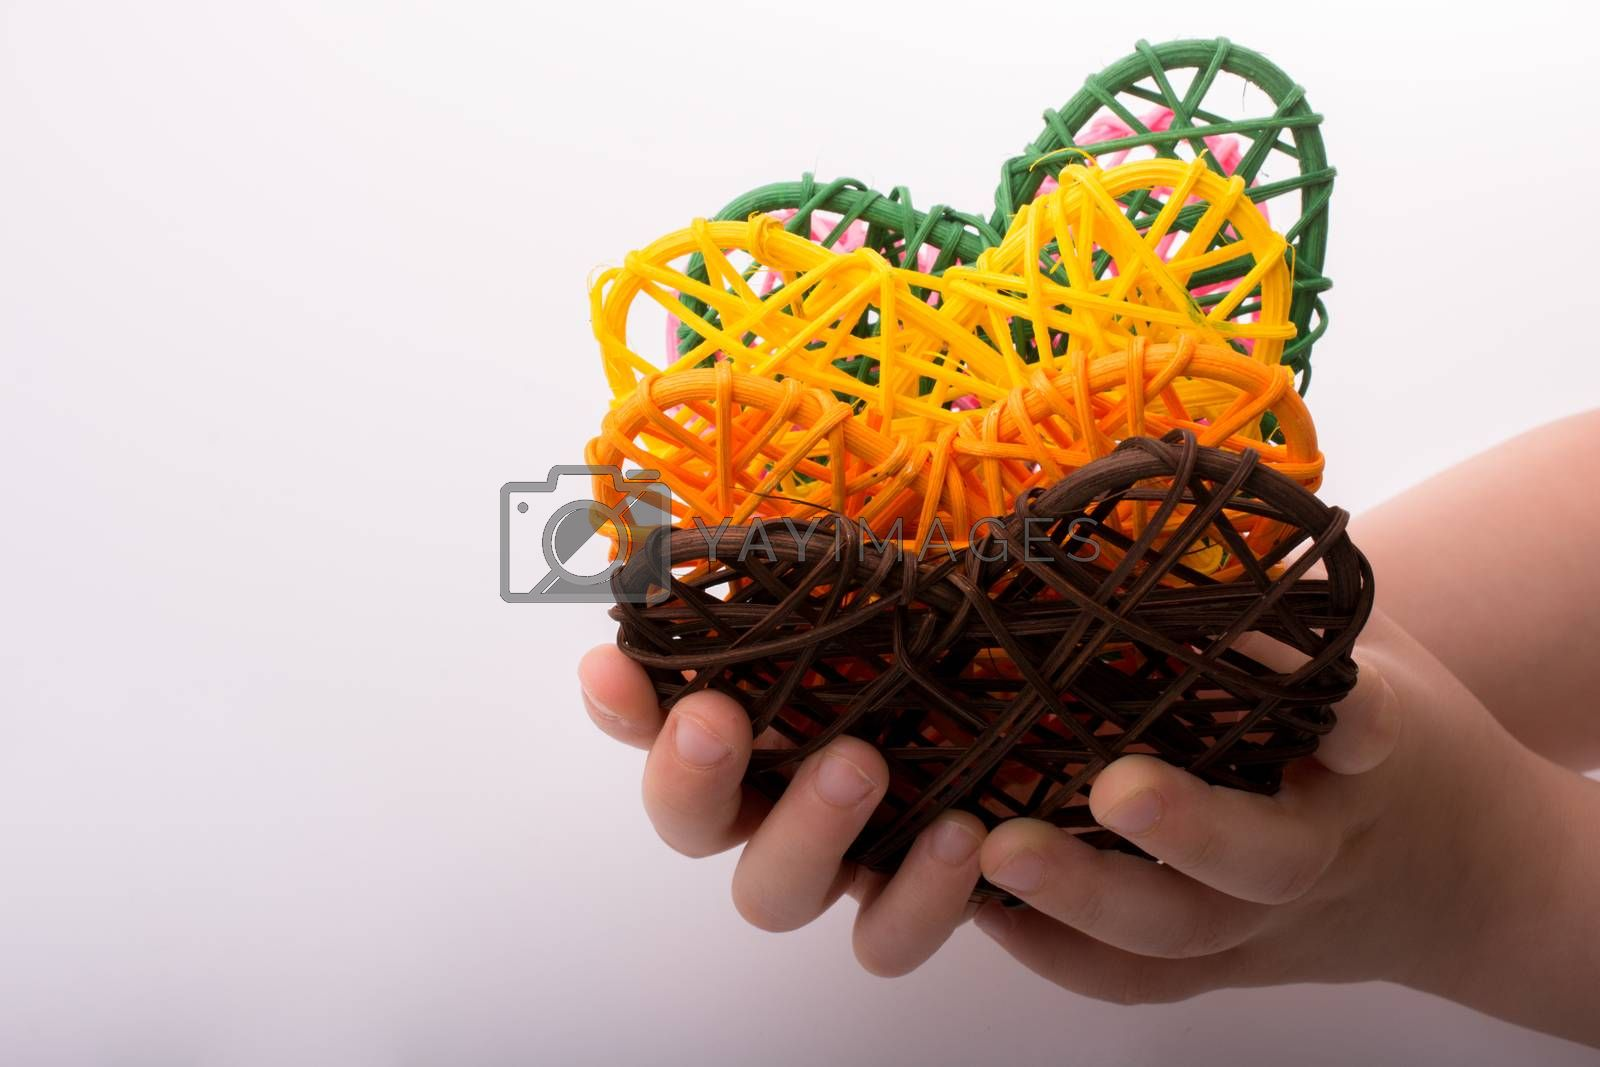 Handmade straw heart or valentines day object in hand